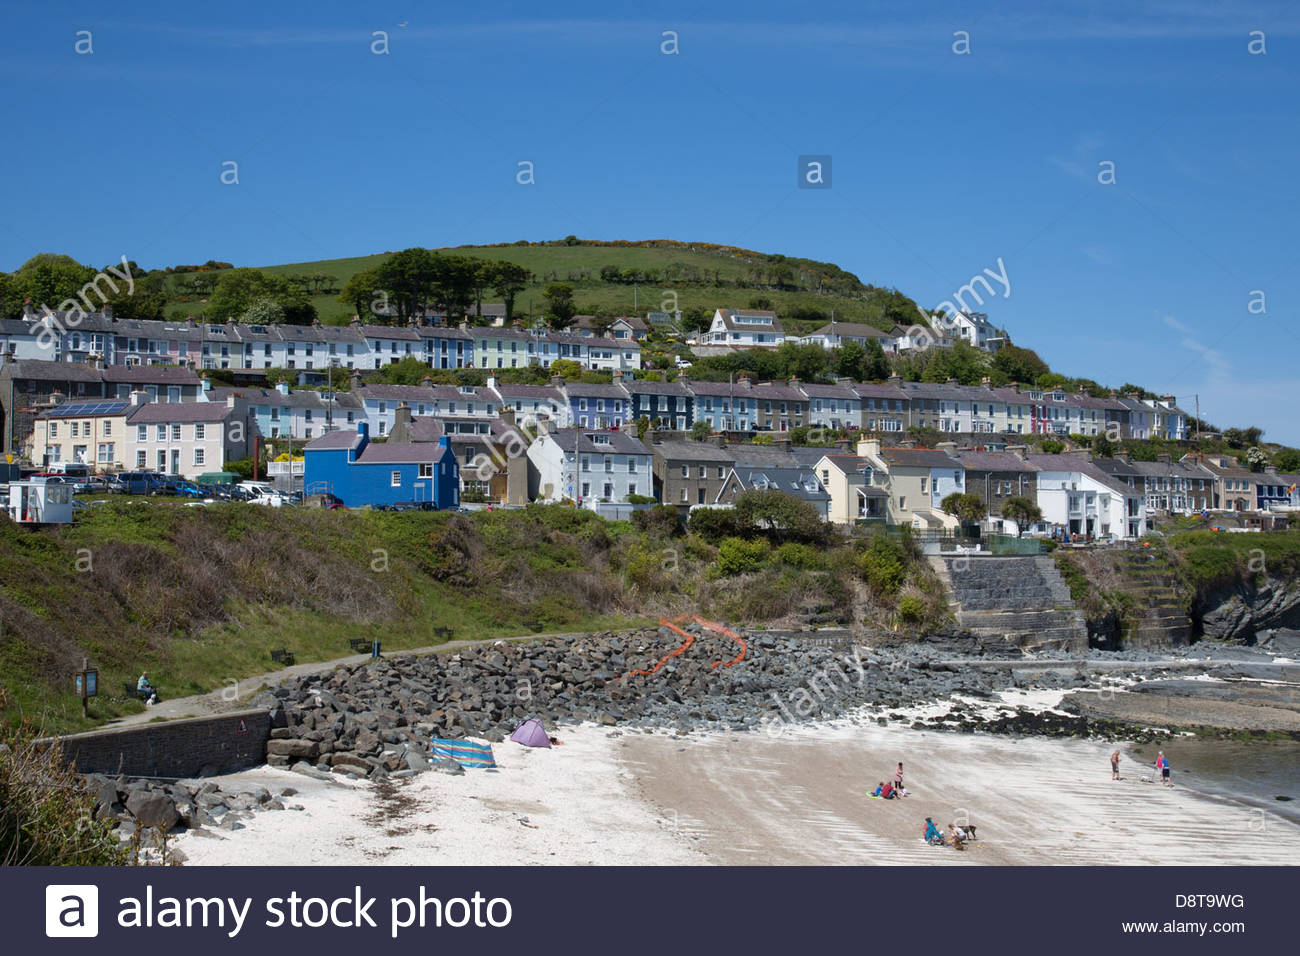 New Quay (Cei Newydd) beach and pastel painted terrace houses - Stock Image